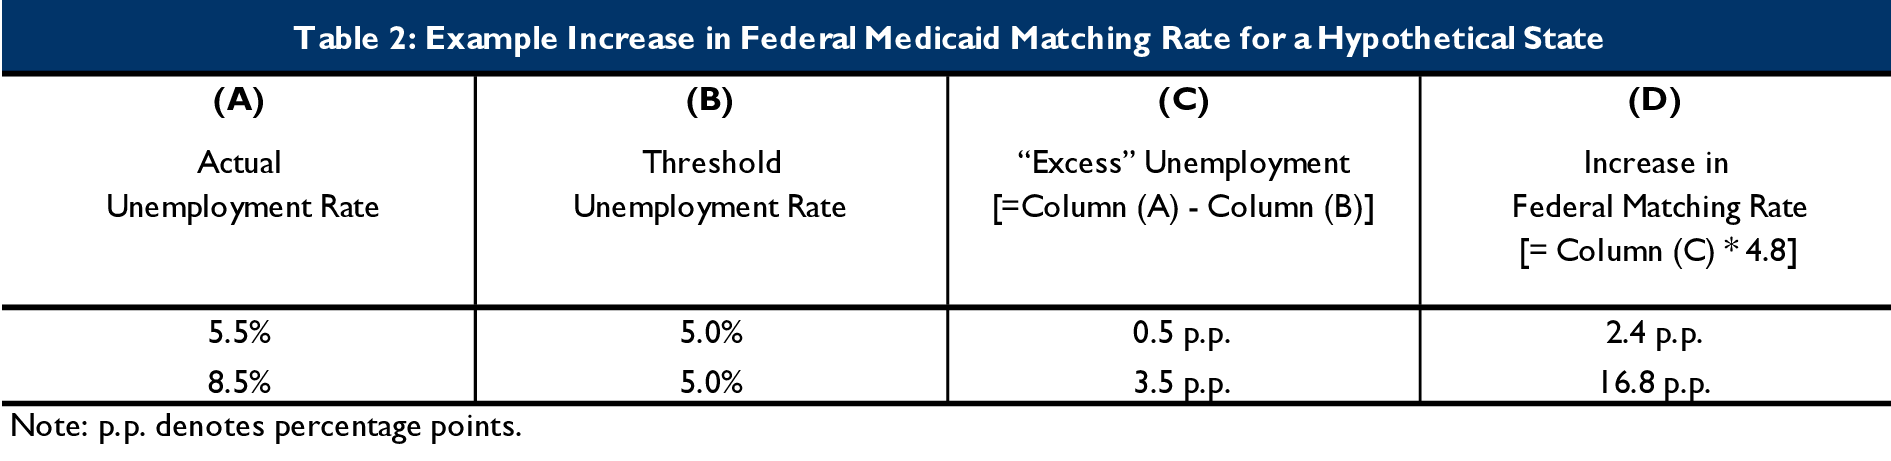 Example increase in federal Medicaid matching rate for a hypothetical state